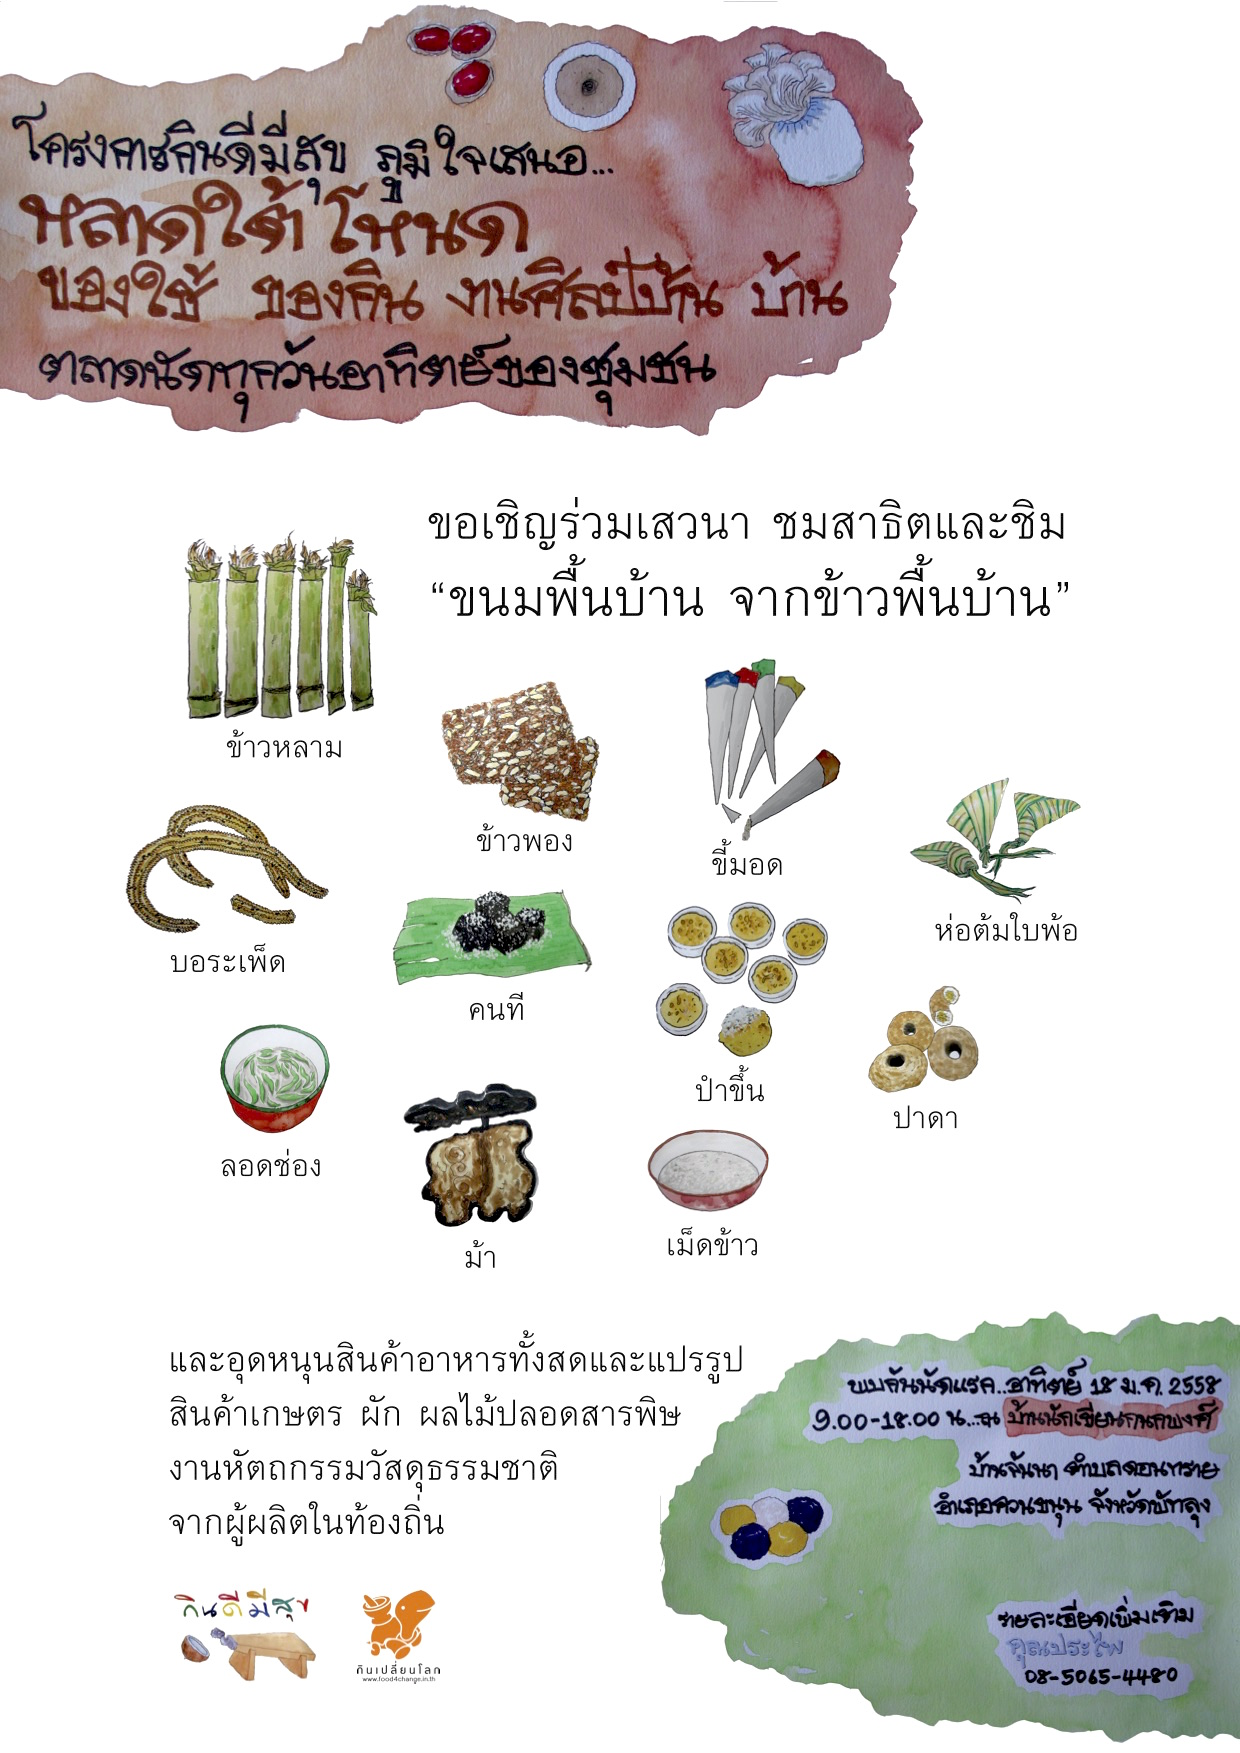 open-lad thai nod brochure front